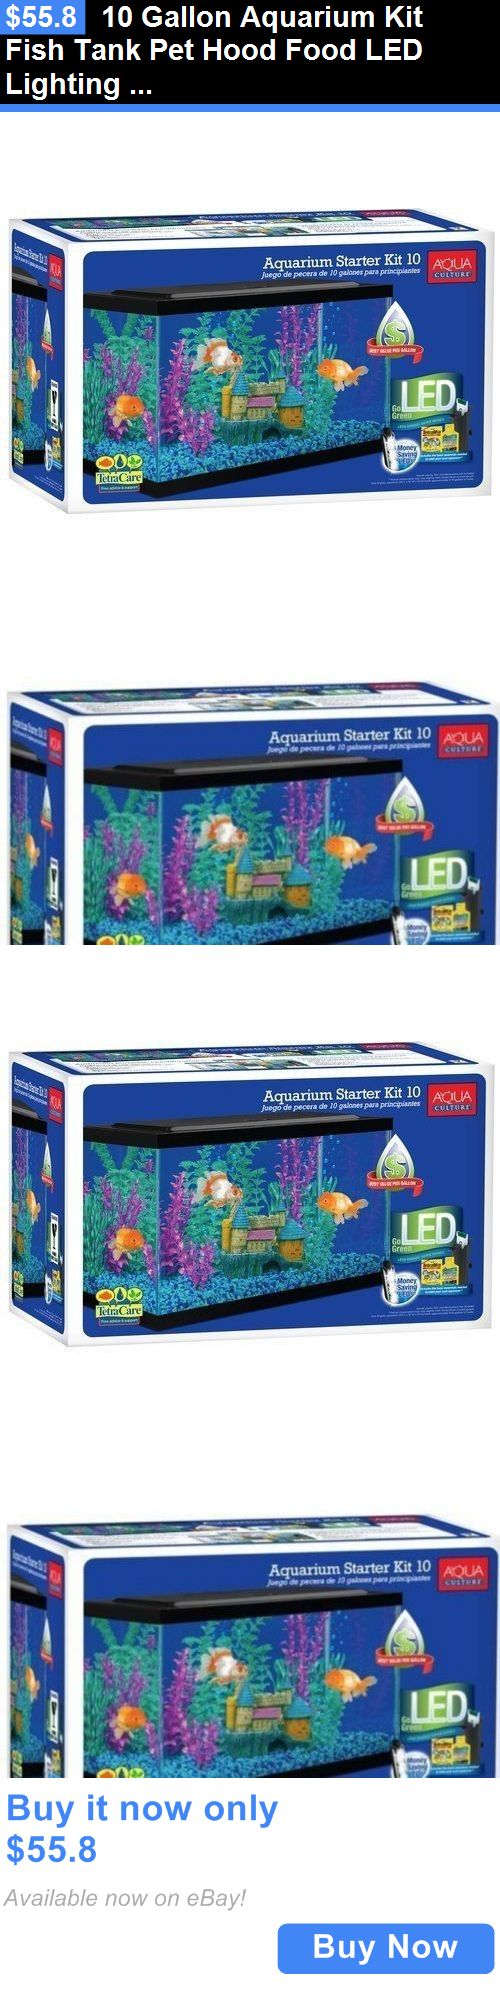 Aquarium fish tank starter kit - Animals Fish And Aquariums 10 Gallon Aquarium Kit Fish Tank Pet Hood Food Led Lighting